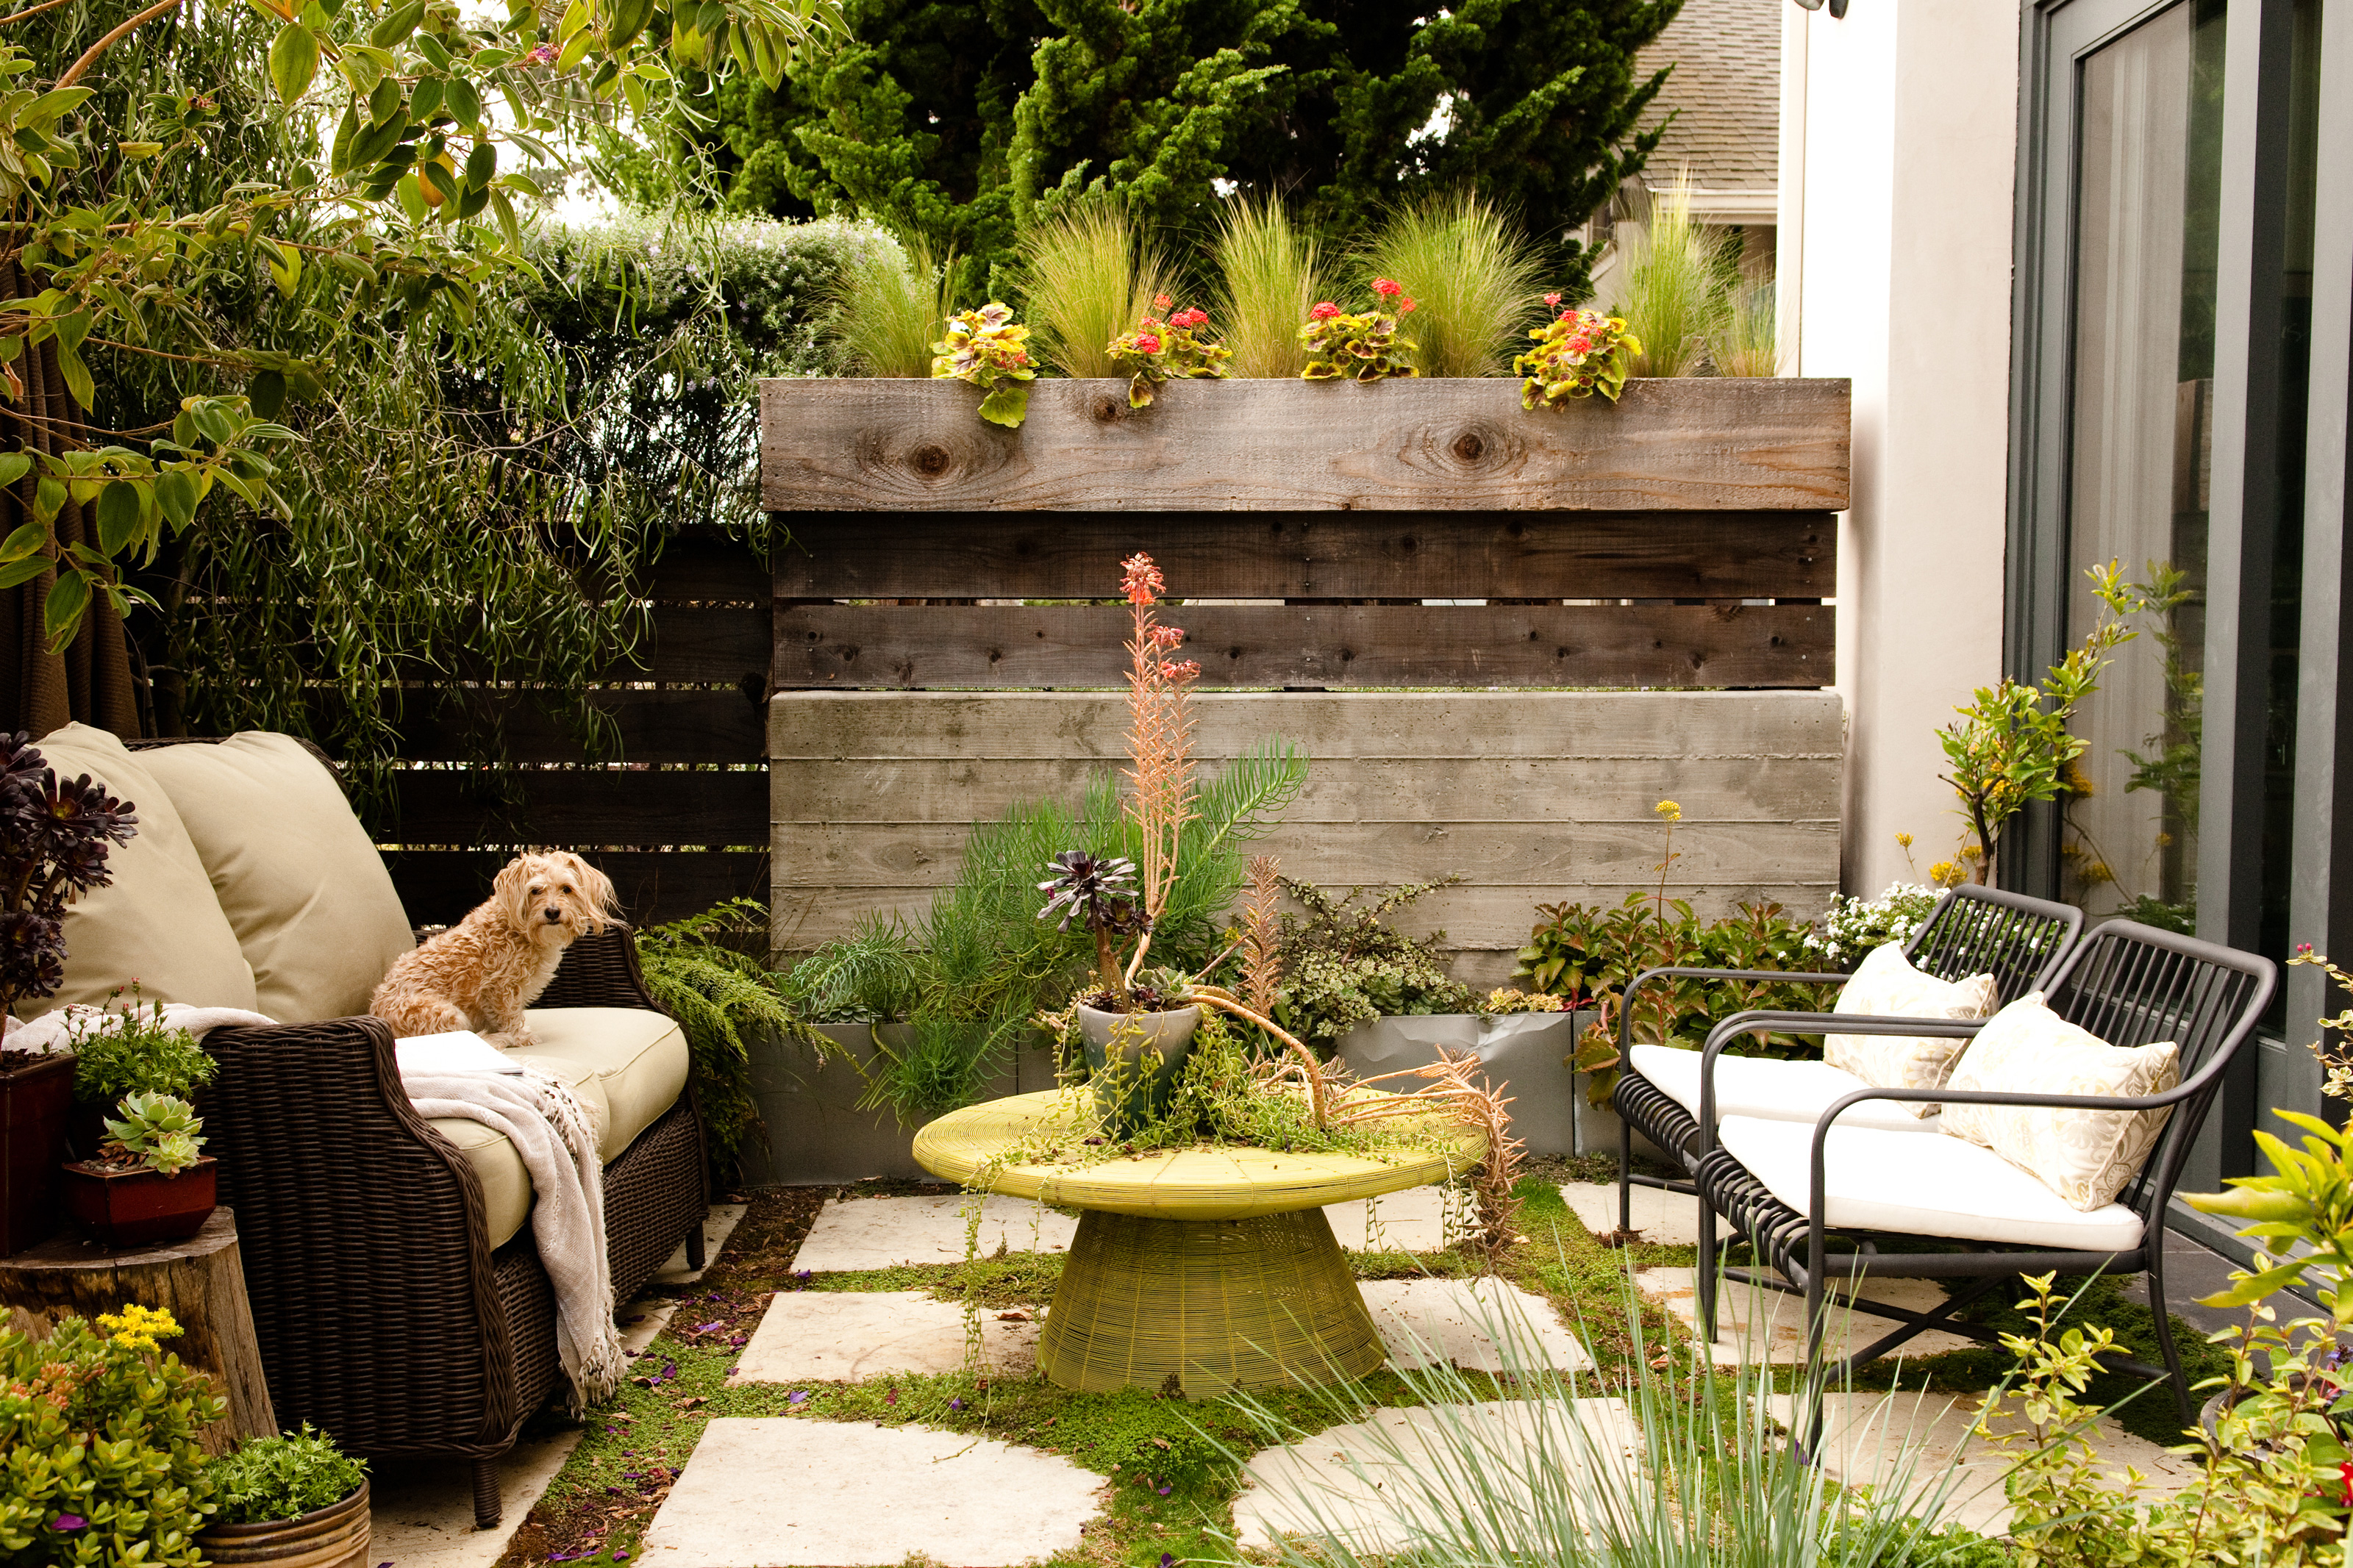 Small Backyard Ideas How To Make A Small Space Look Bigger inside House Backyard Ideas